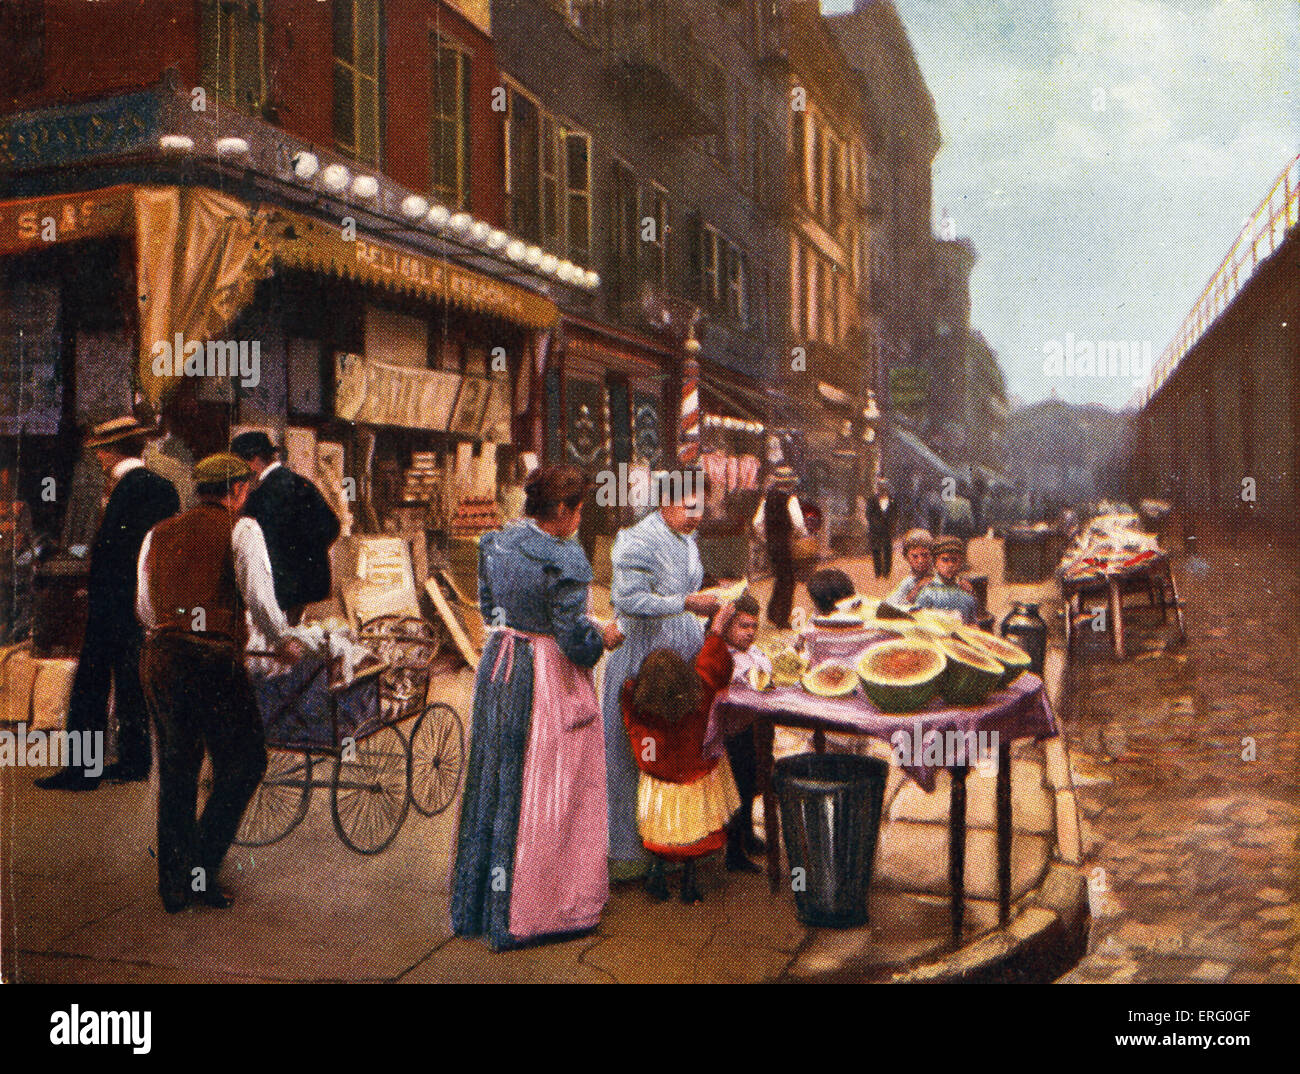 Lower East Side,  New York, 1890s  with passers-by strolling down the streets, shops and barrow stalls outside. - Stock Image